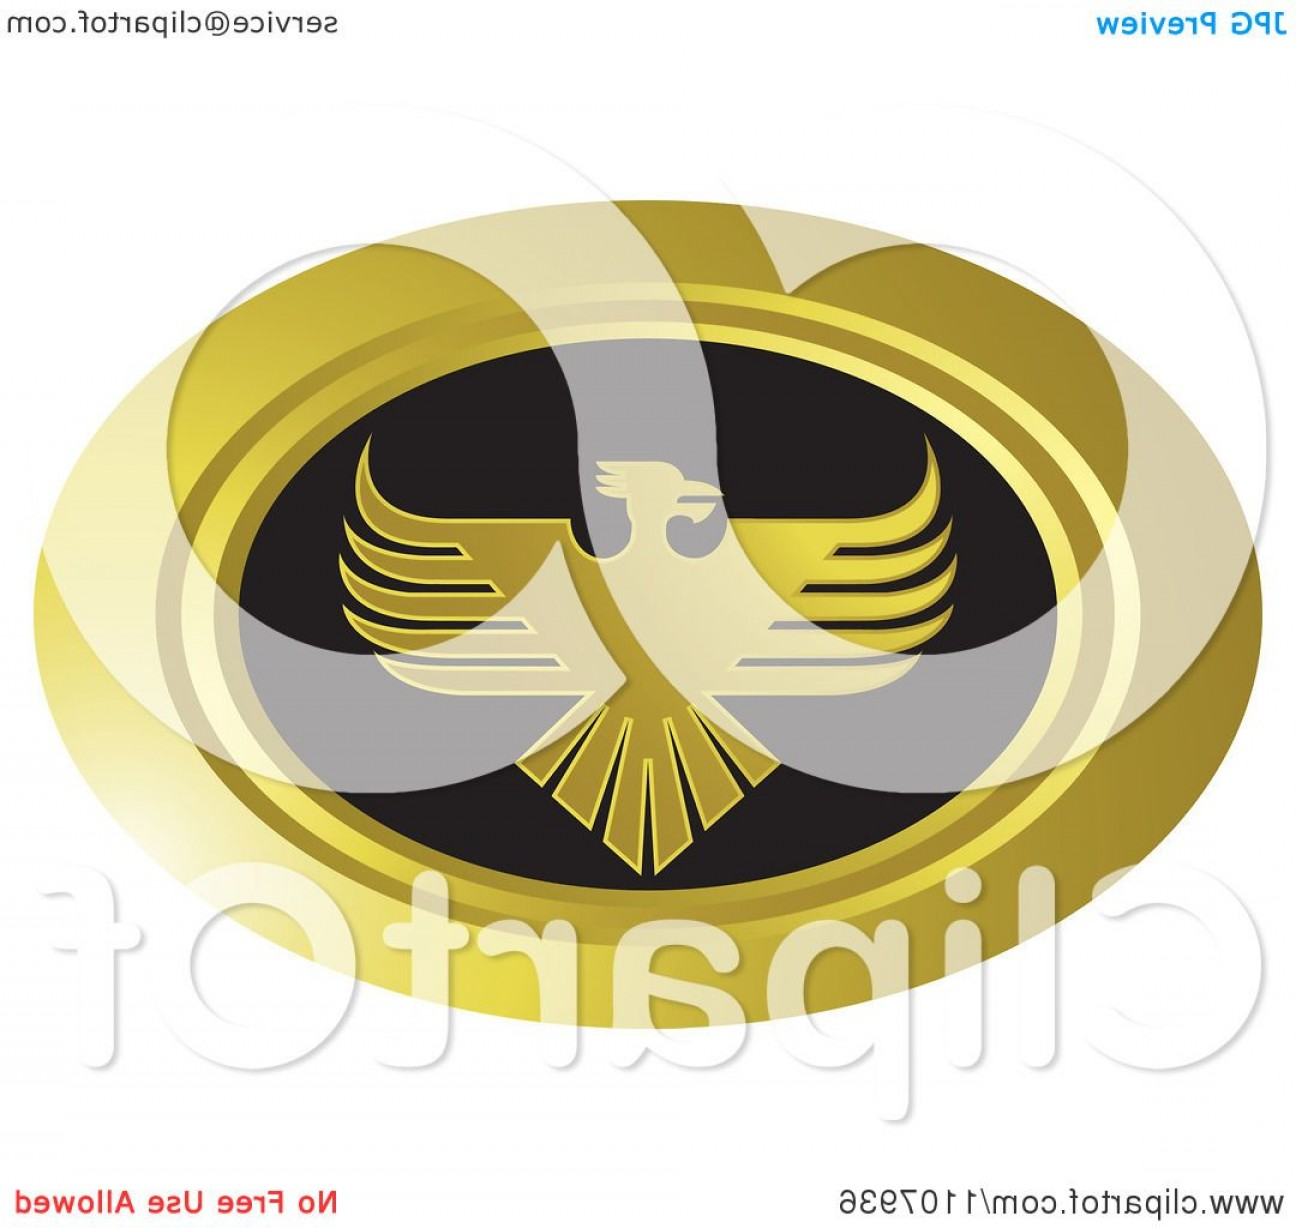 Firebird Vector Transparent Background: Oval Gold And Black Phoenix Icon